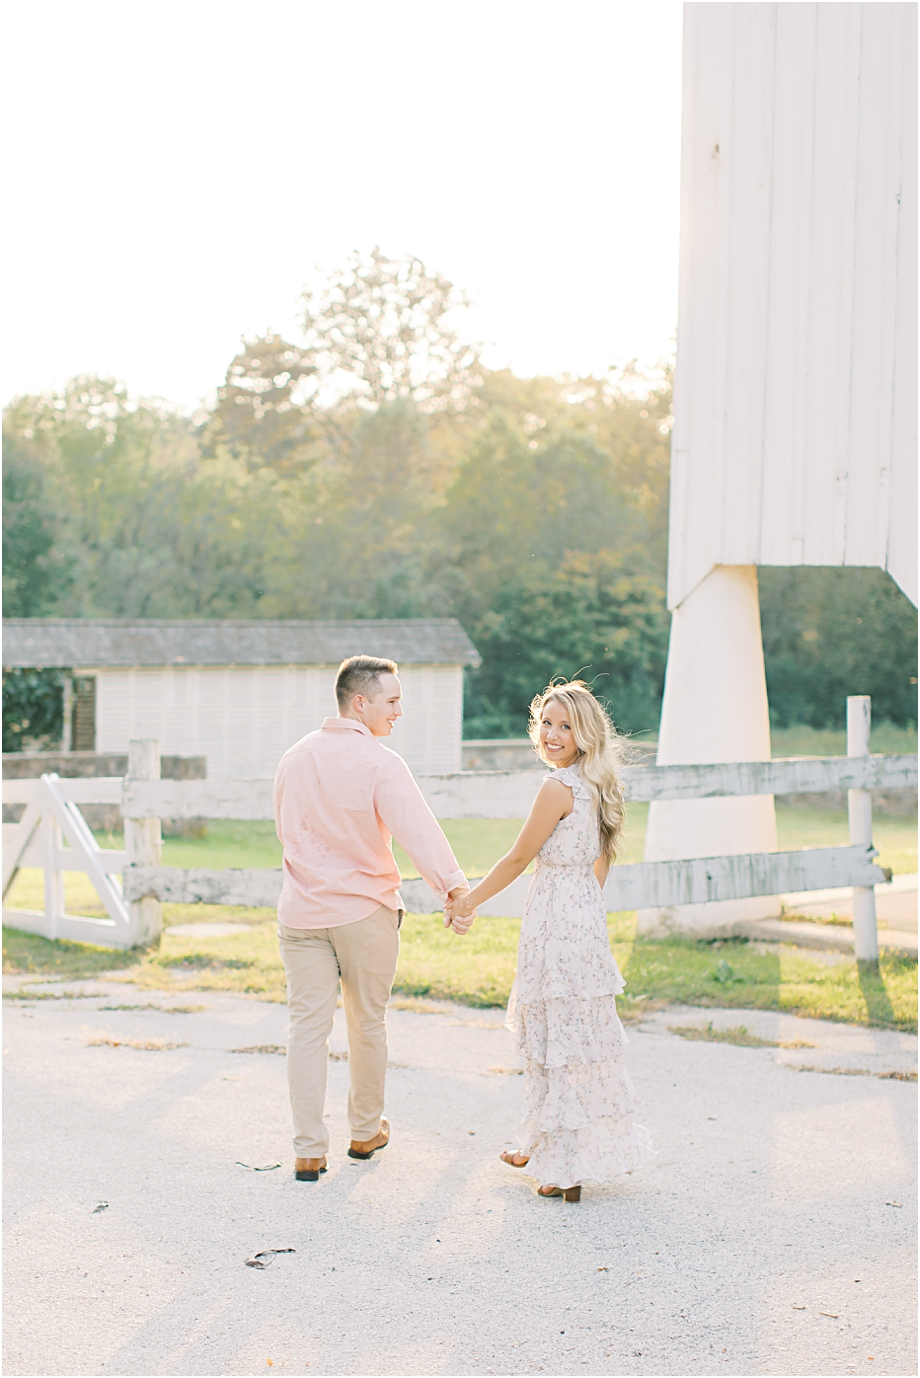 Knox Farm Engagement Session   Valley Forge Engagement Photographer Sarah Canning